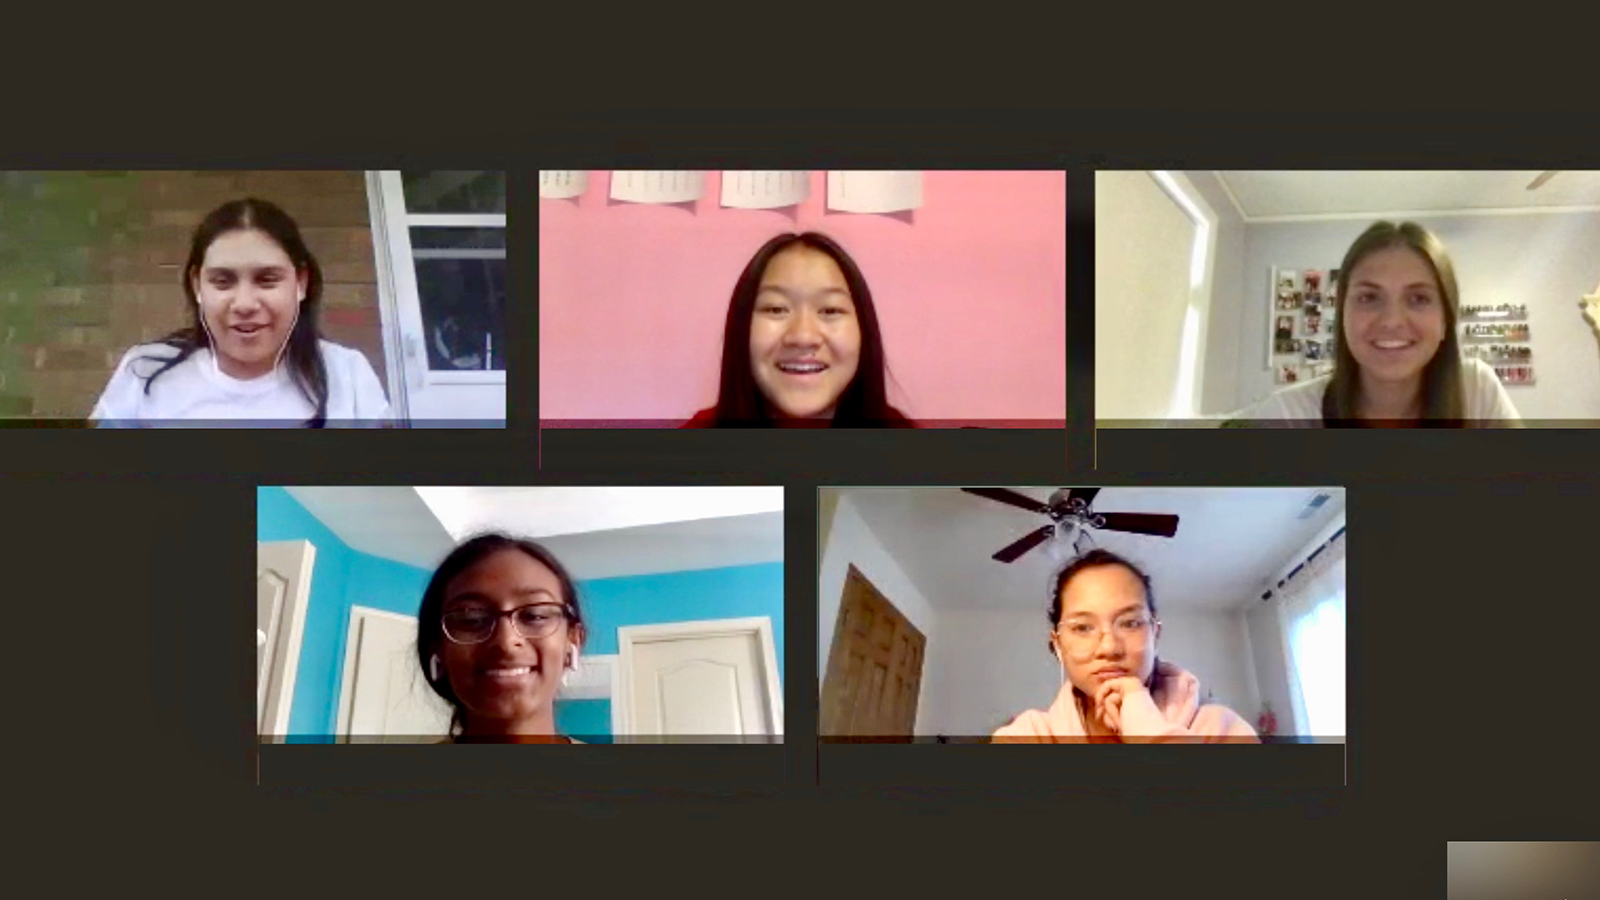 High school students taking part in Big Data Camp meet virtually with Guadalupe Medina (upper left), a Community College Internship (CCI) Program intern working in Argonne's Strategic Security Sciences Division (specifically in cybersecurity).